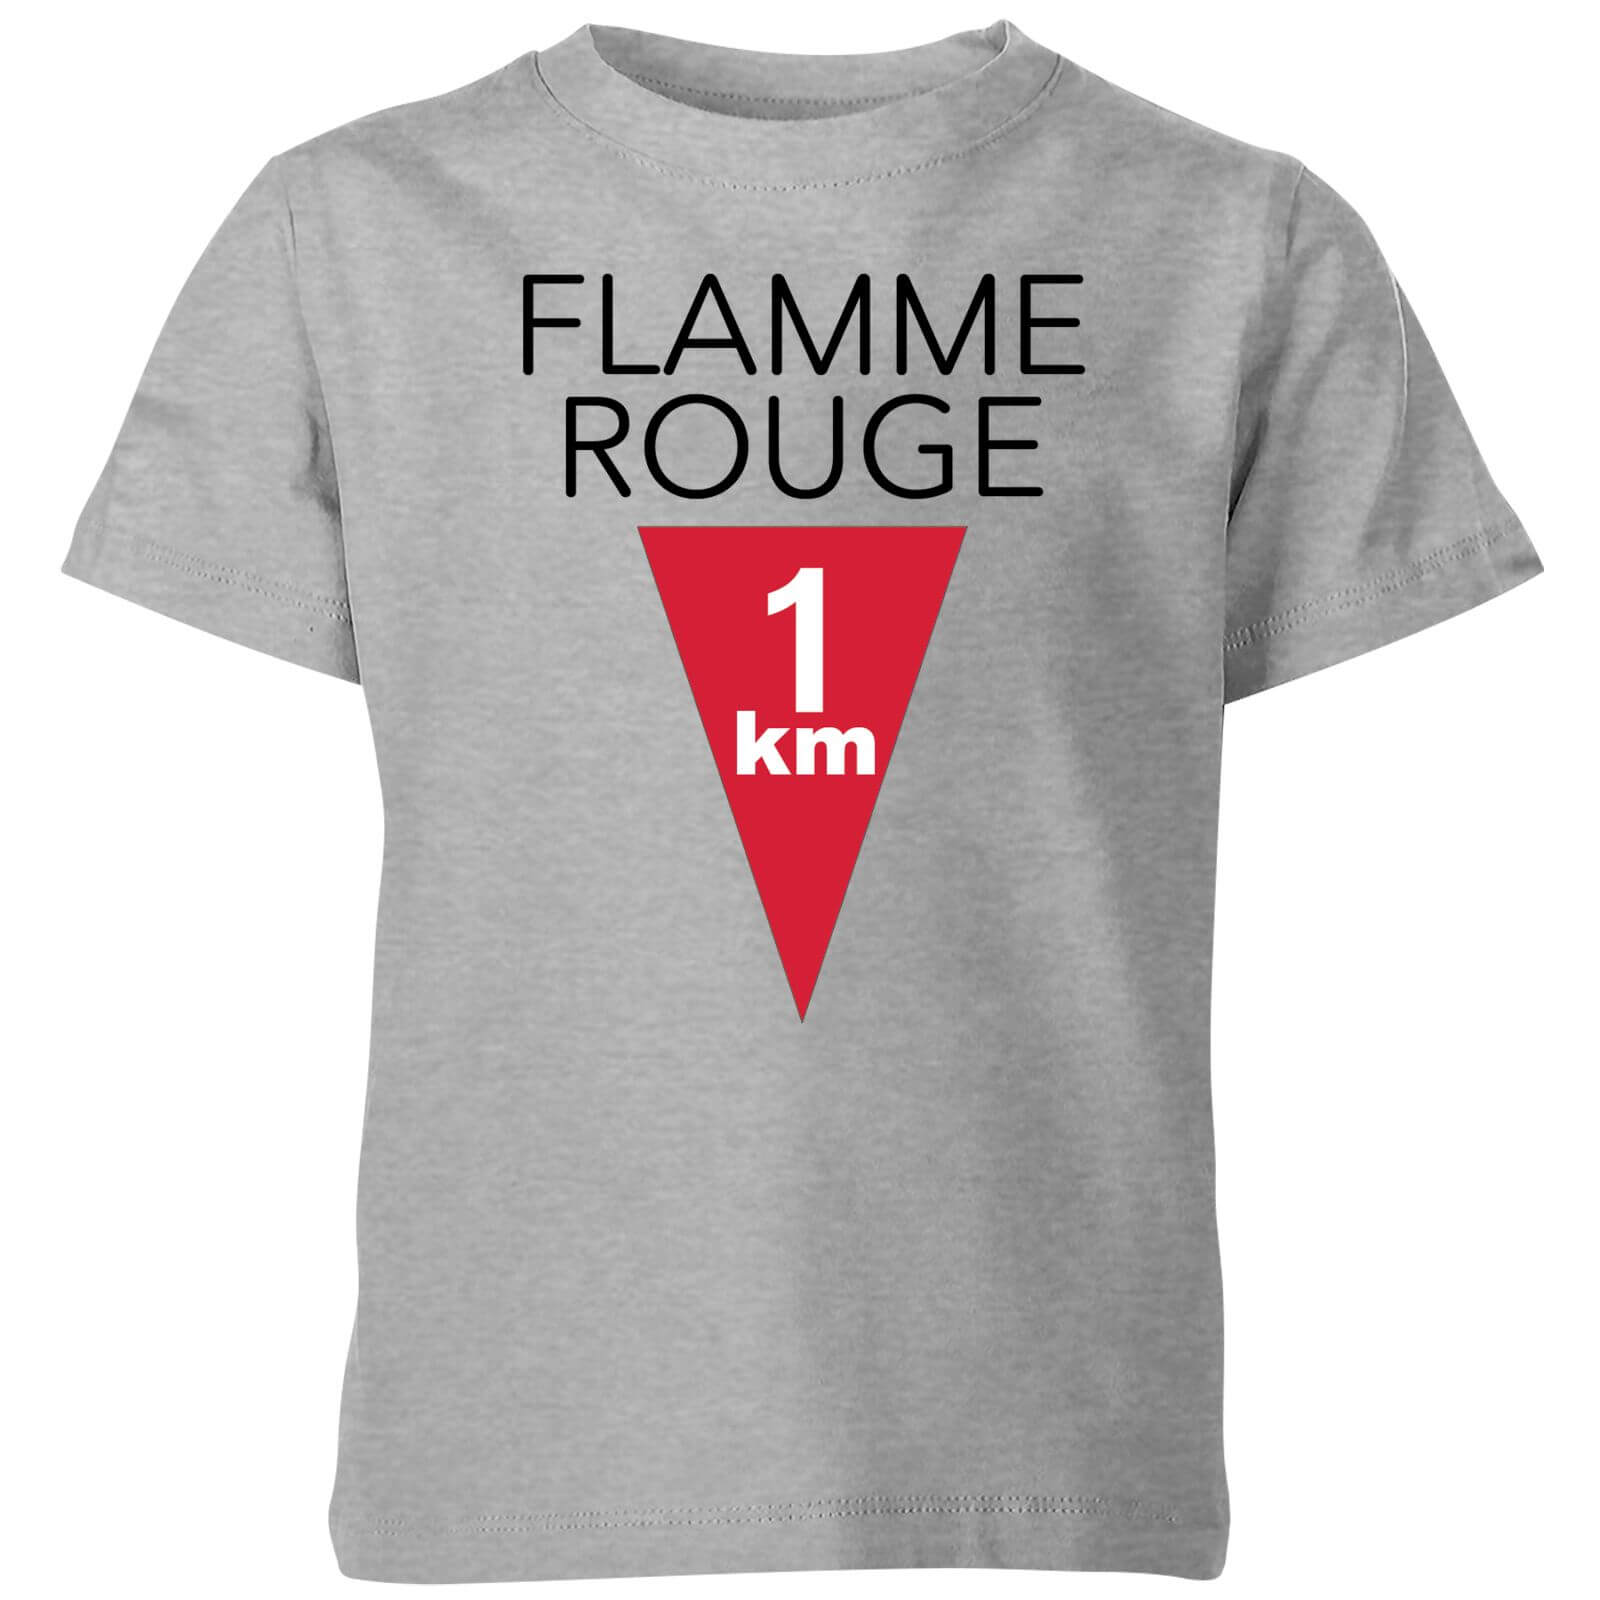 Summit Finish Flamme Rouge Kids' T-Shirt - Grey - 5-6 Years - Grey